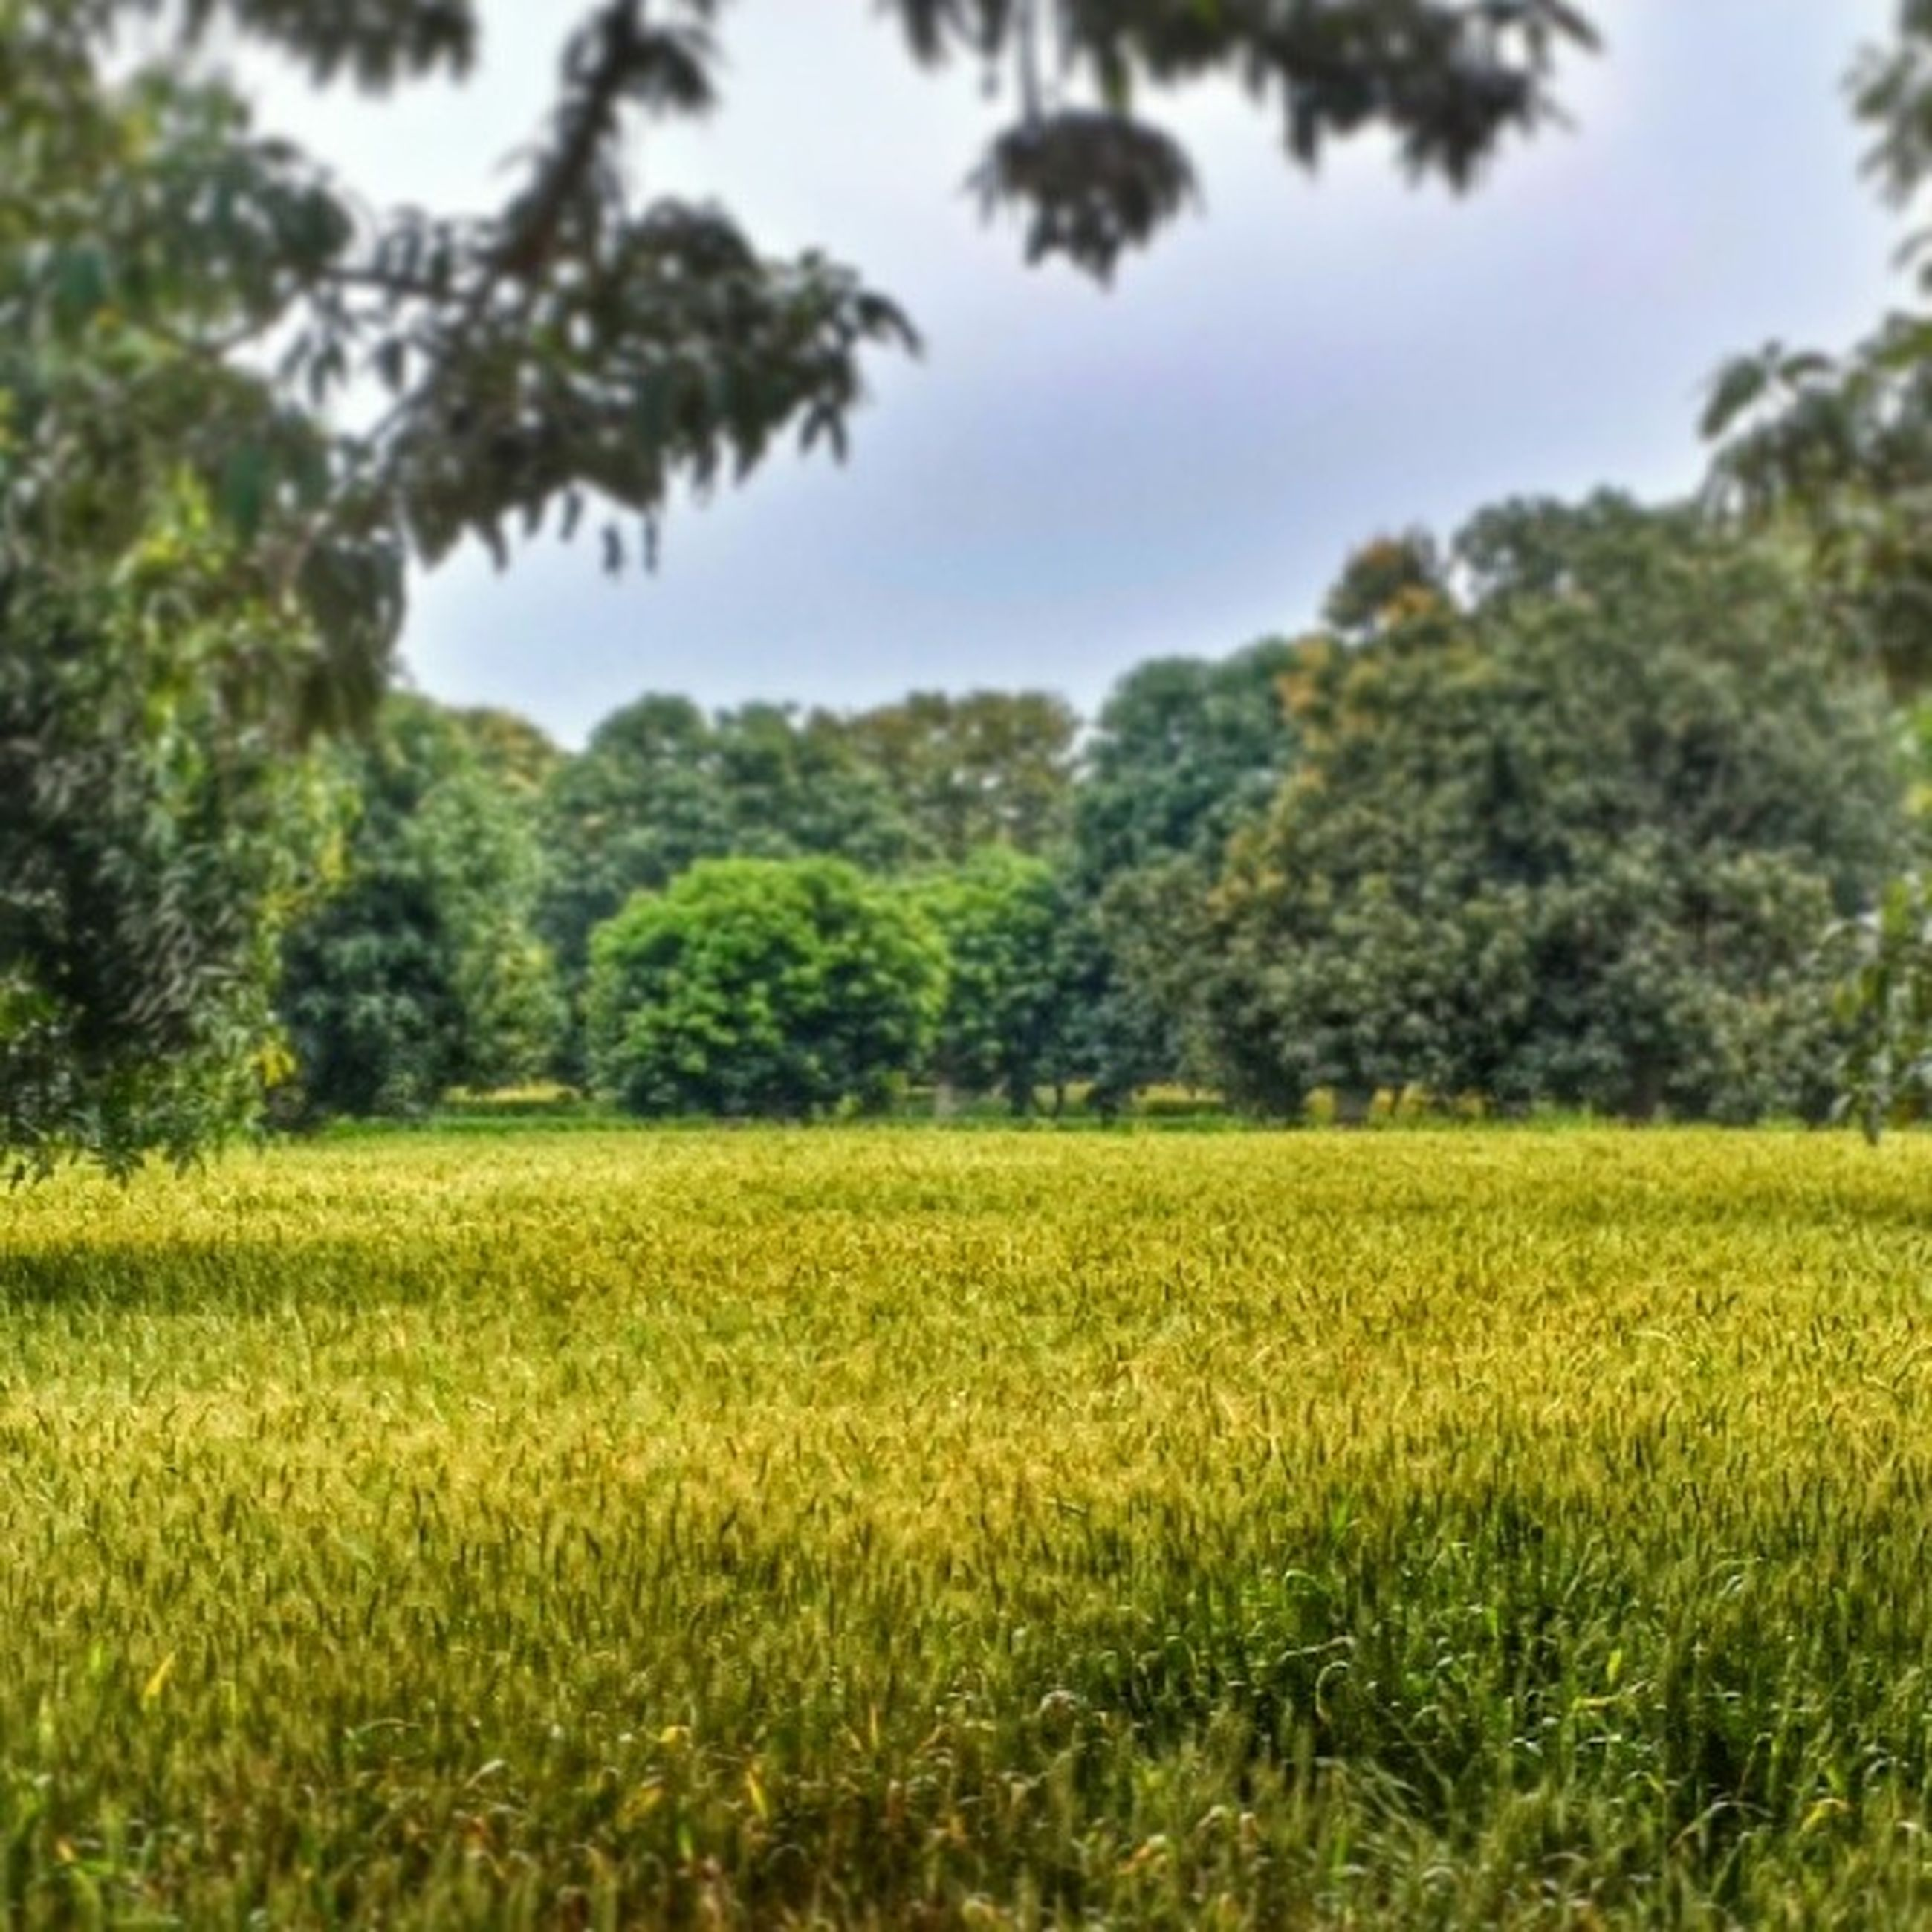 growth, tree, field, green color, tranquility, tranquil scene, grass, beauty in nature, landscape, nature, scenics, sky, plant, grassy, lush foliage, green, day, no people, outdoors, rural scene